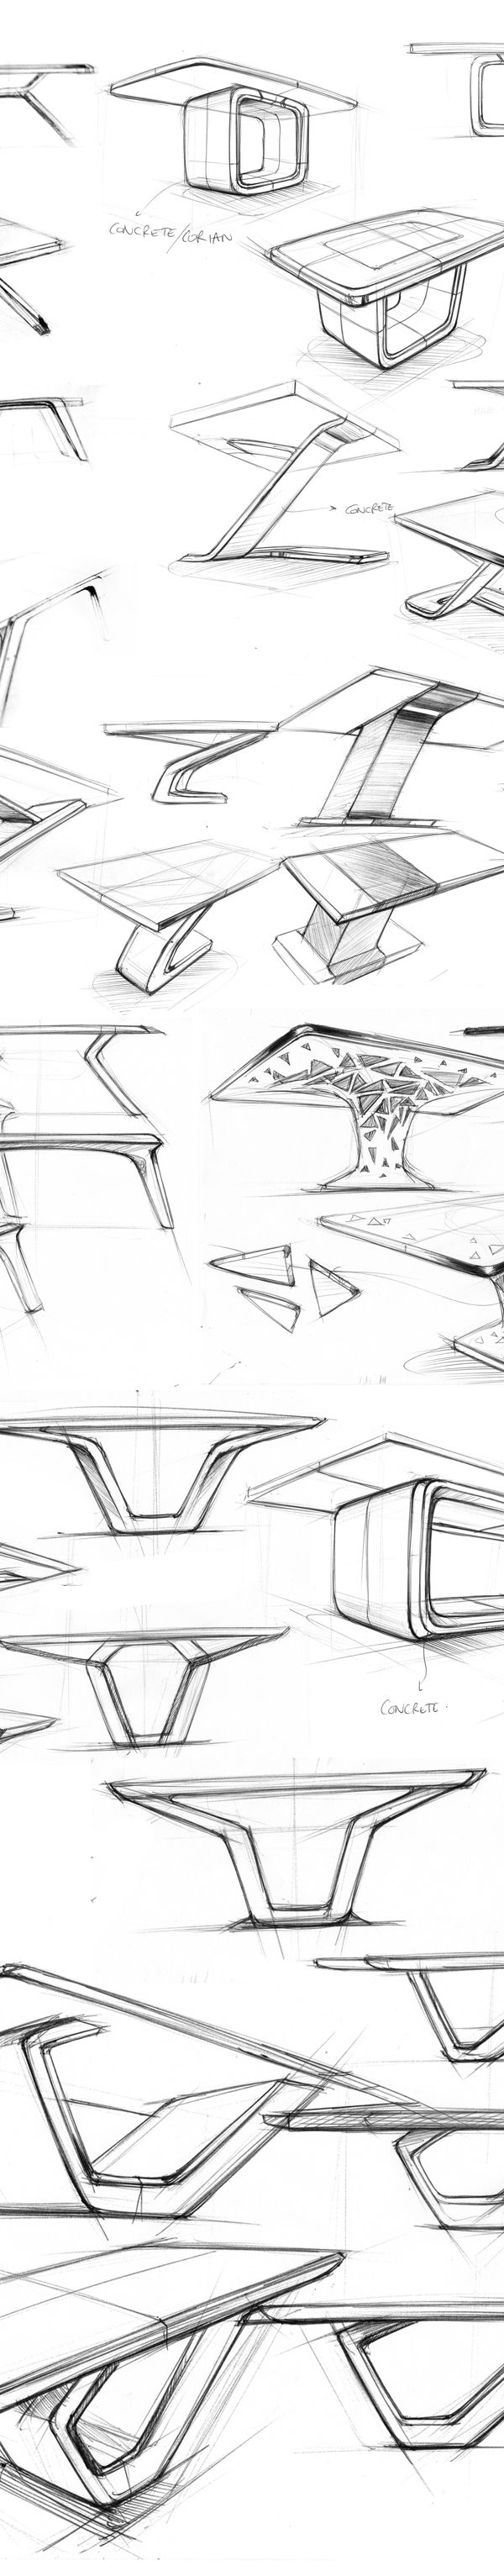 TABLE / POOL TABLE SKETCHES WIP - 2014 on Behance